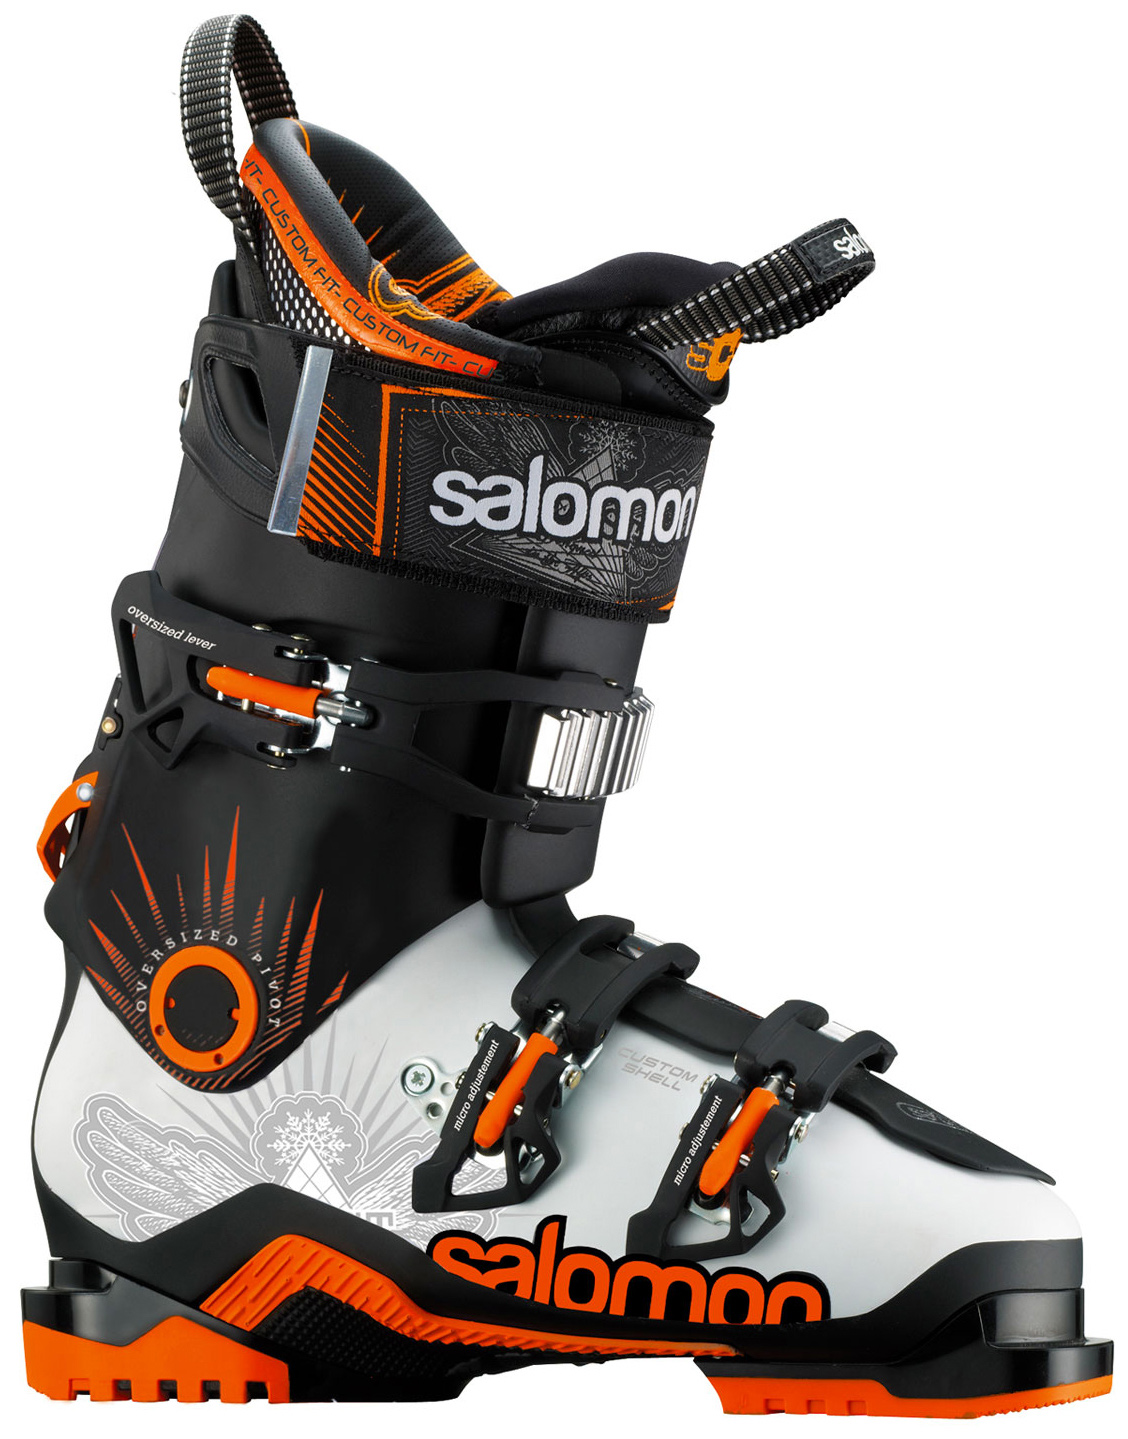 Ski Key Features of the Salomon Quest Max 100 Ski Boots: Ride & Hike Technology Twinframe 360 degree Custom Shell My Custom Fit Pro Backbone Release 24Mm Oversized Pivot Interchangable Bi-Material Alpine Pads Bi Material Pu Lower Shell Bi-Material Pu Upper Cuff Waterproof Gusset - $405.95